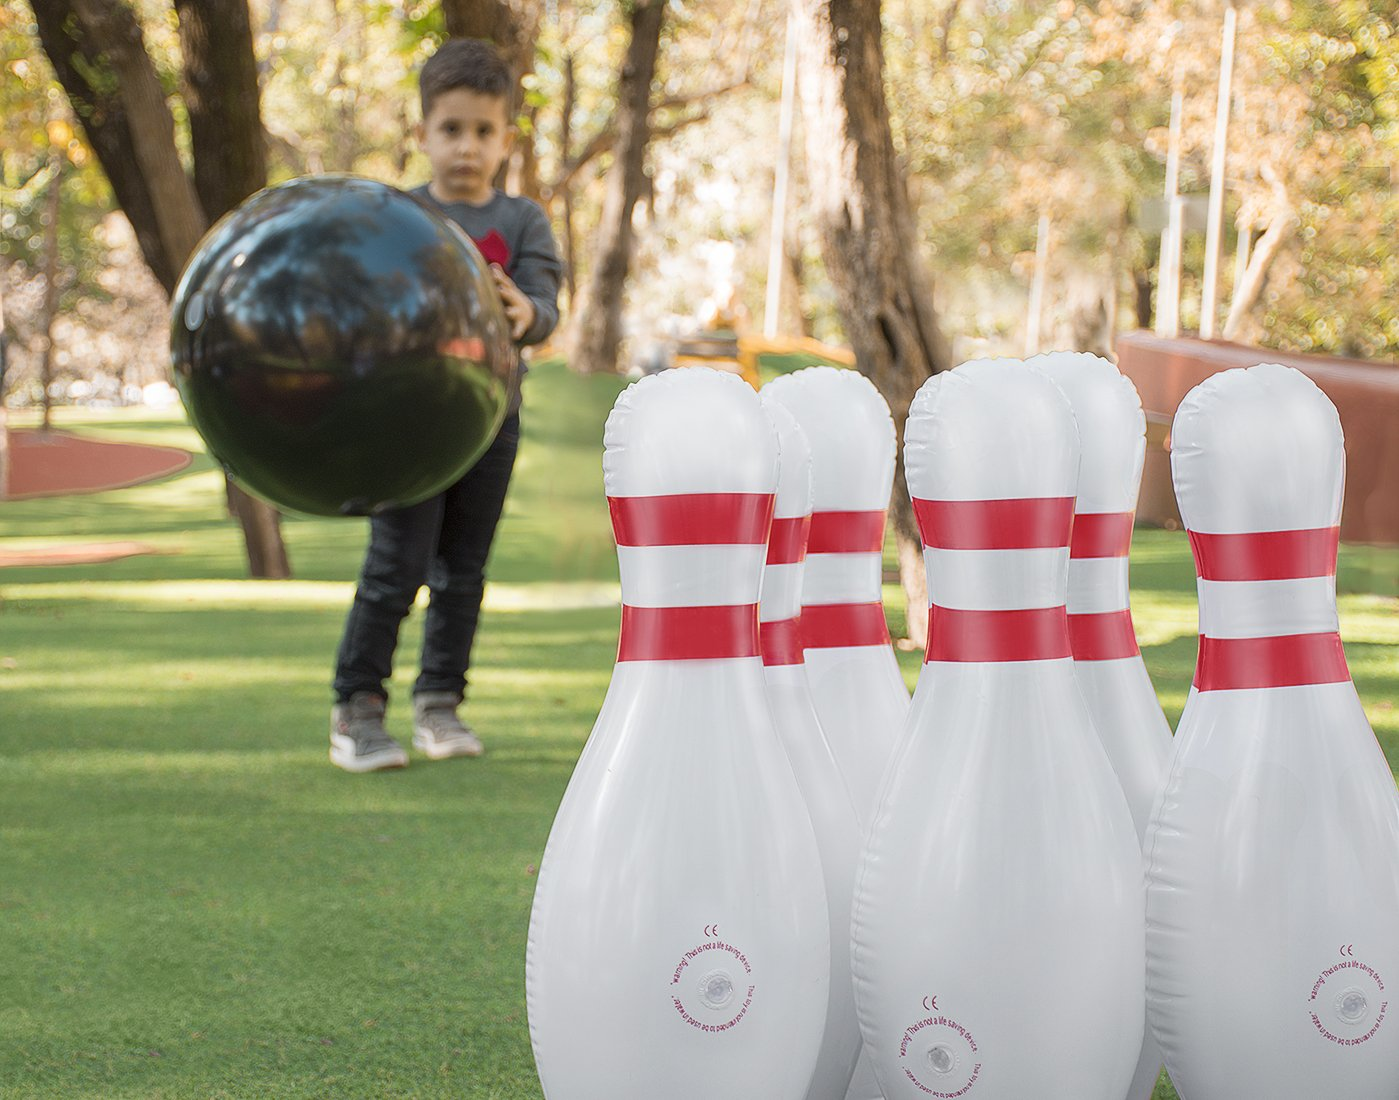 Inflatable Bowling Ball Set – Ideal Fun Game for Kids & Adults, Family Parties & Picnics – Outdoor or Indoor - Stable & Durable – Perfect Size – Includes 1 Ball & 6 Pins by ABCO TECH (Image #5)